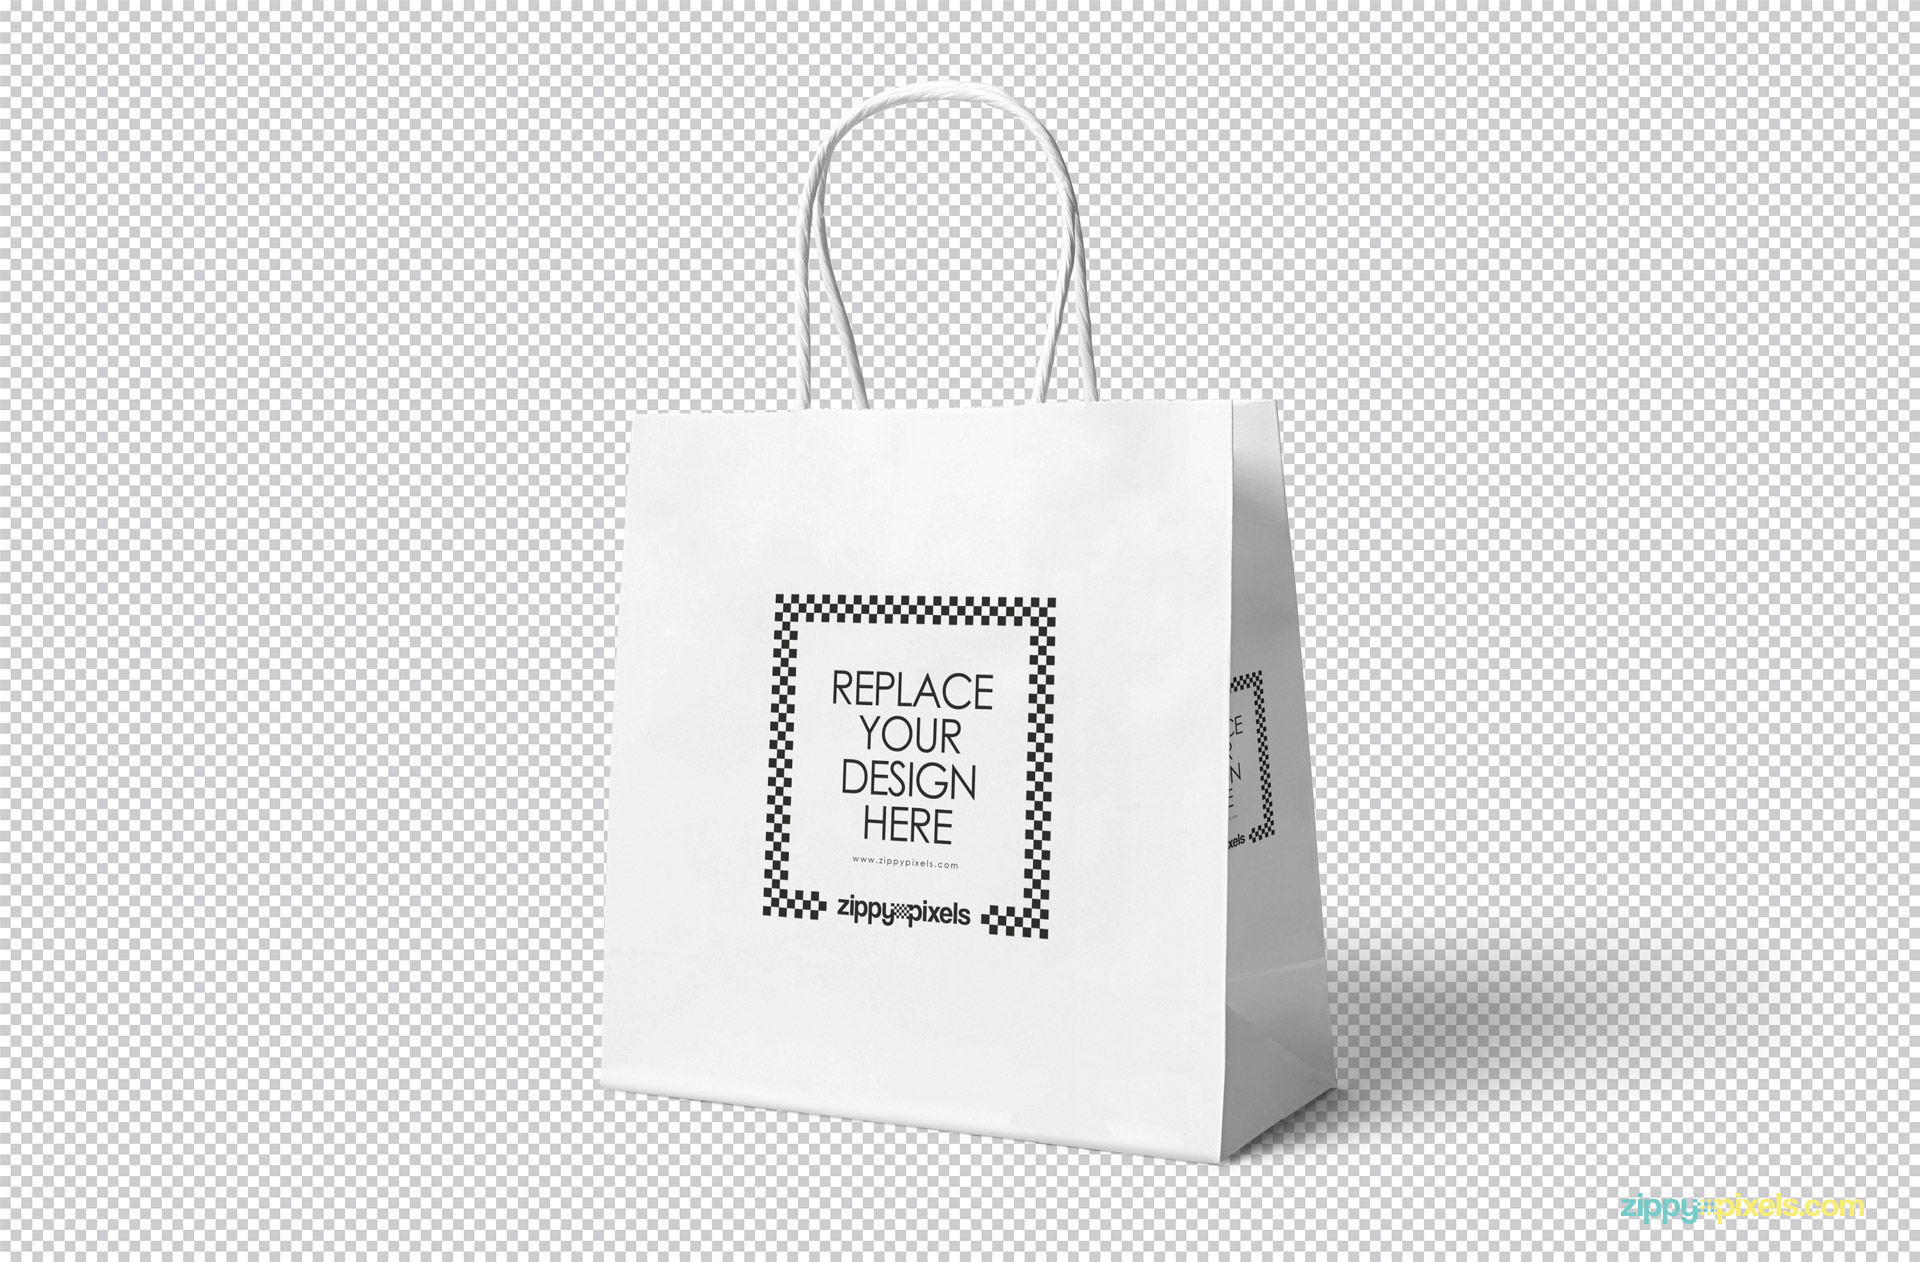 Gift bag mockup showing replaceable design option.